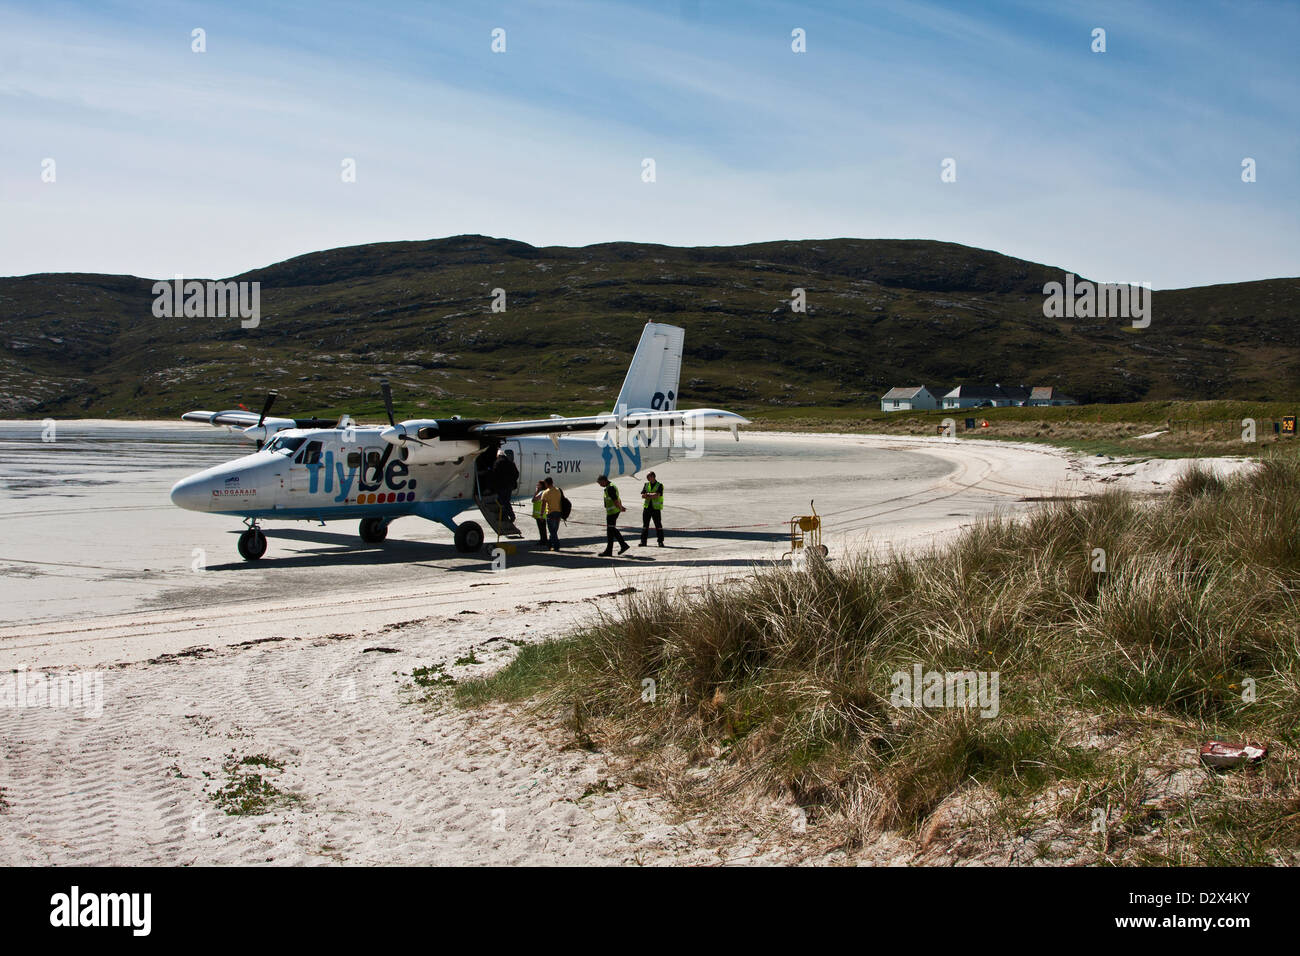 Isle of Barra, Outer Hebrides, Western Isles, Scotland an aircraft loading passengers at the unique beach airport - Stock Image